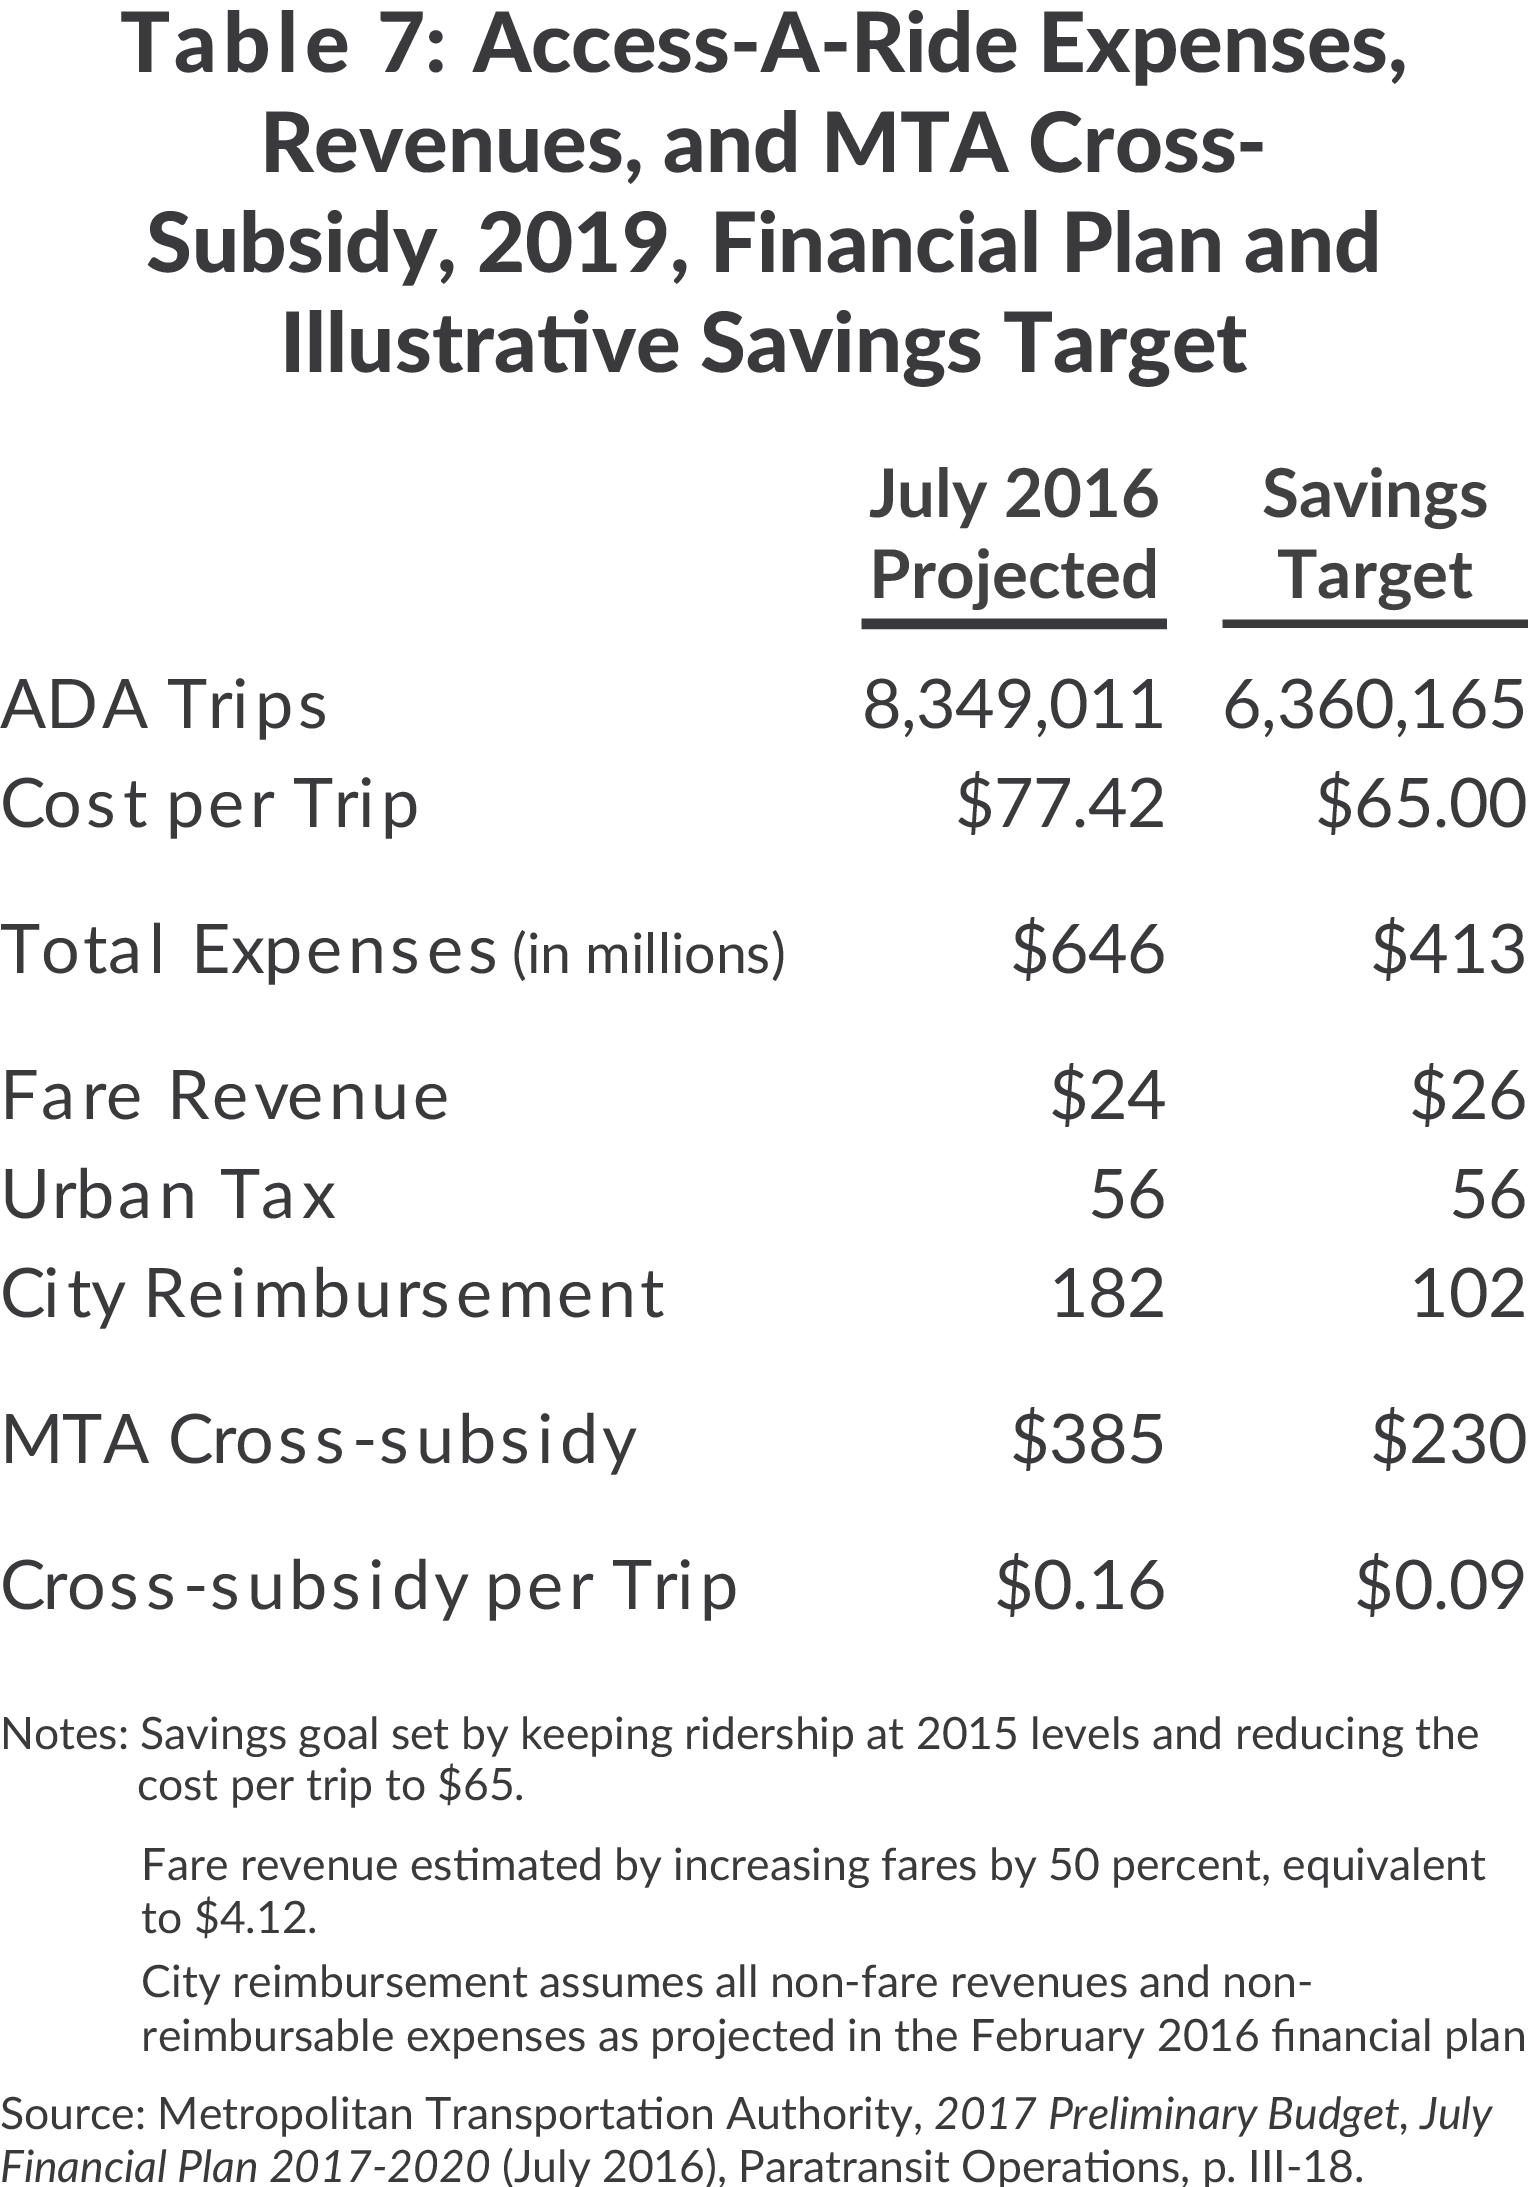 Savings target for Access-a-Ride